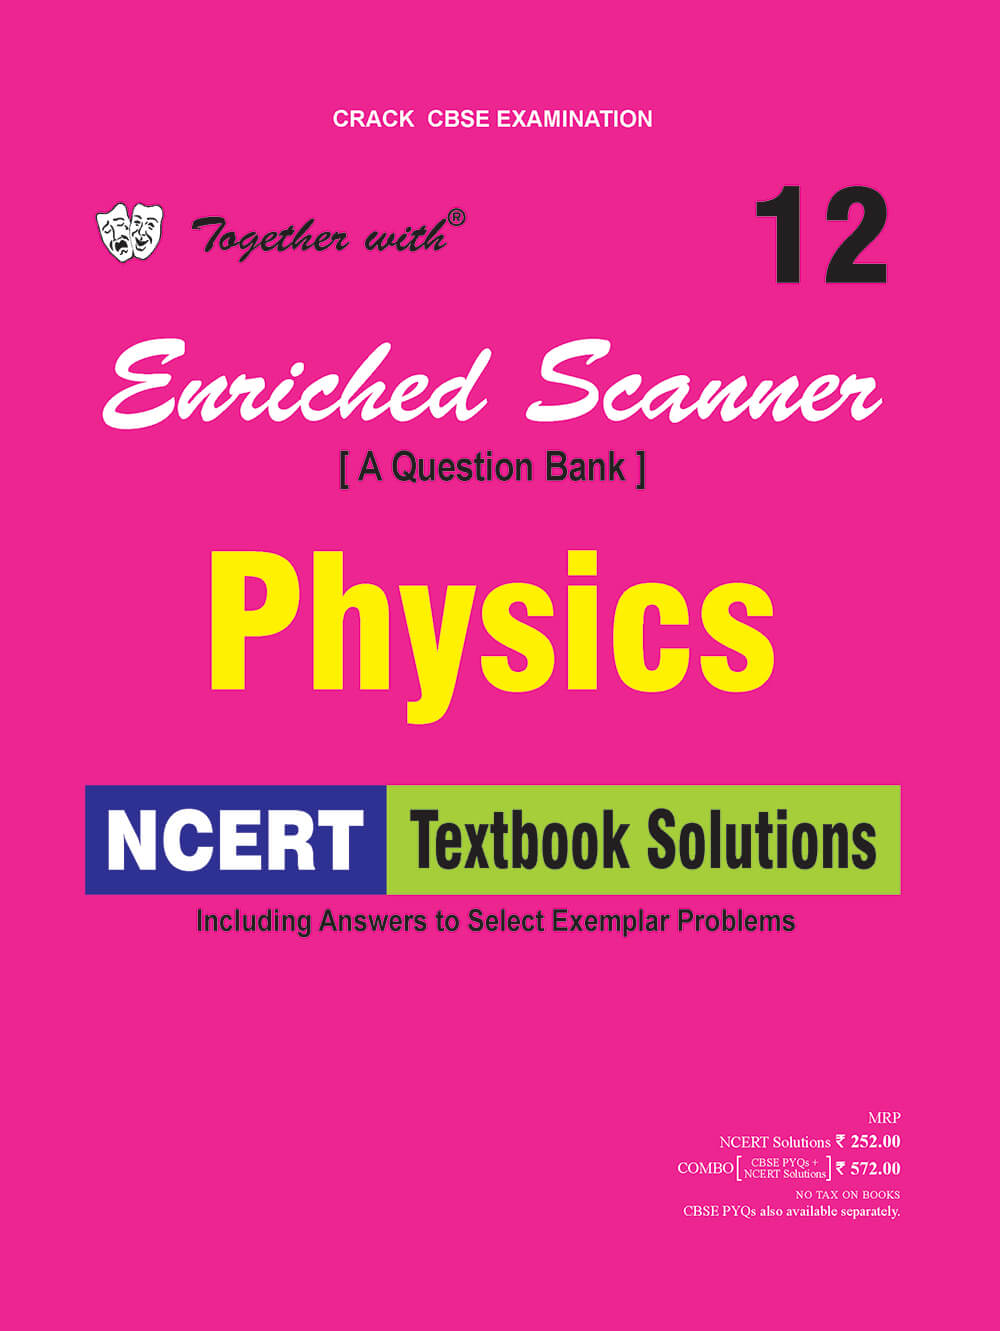 best price on-together with physics class 12 questions bank